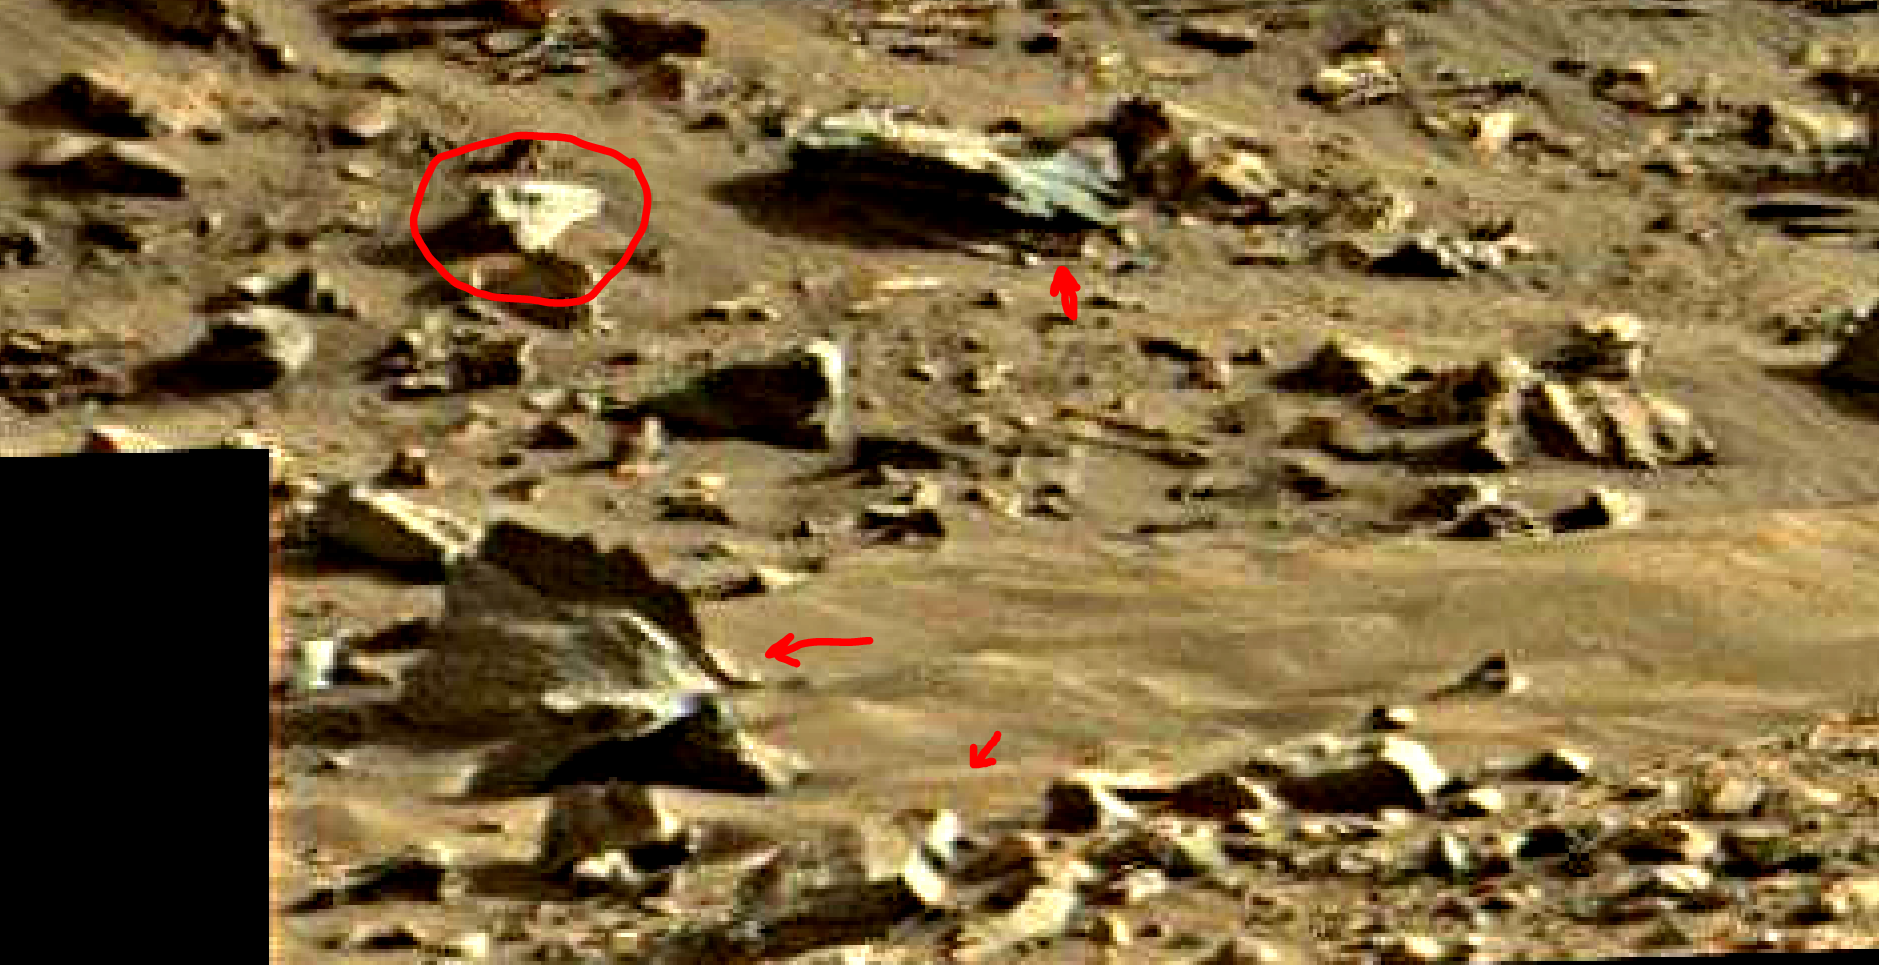 mars sol 1419 anomaly artifacts 16 was life on mars